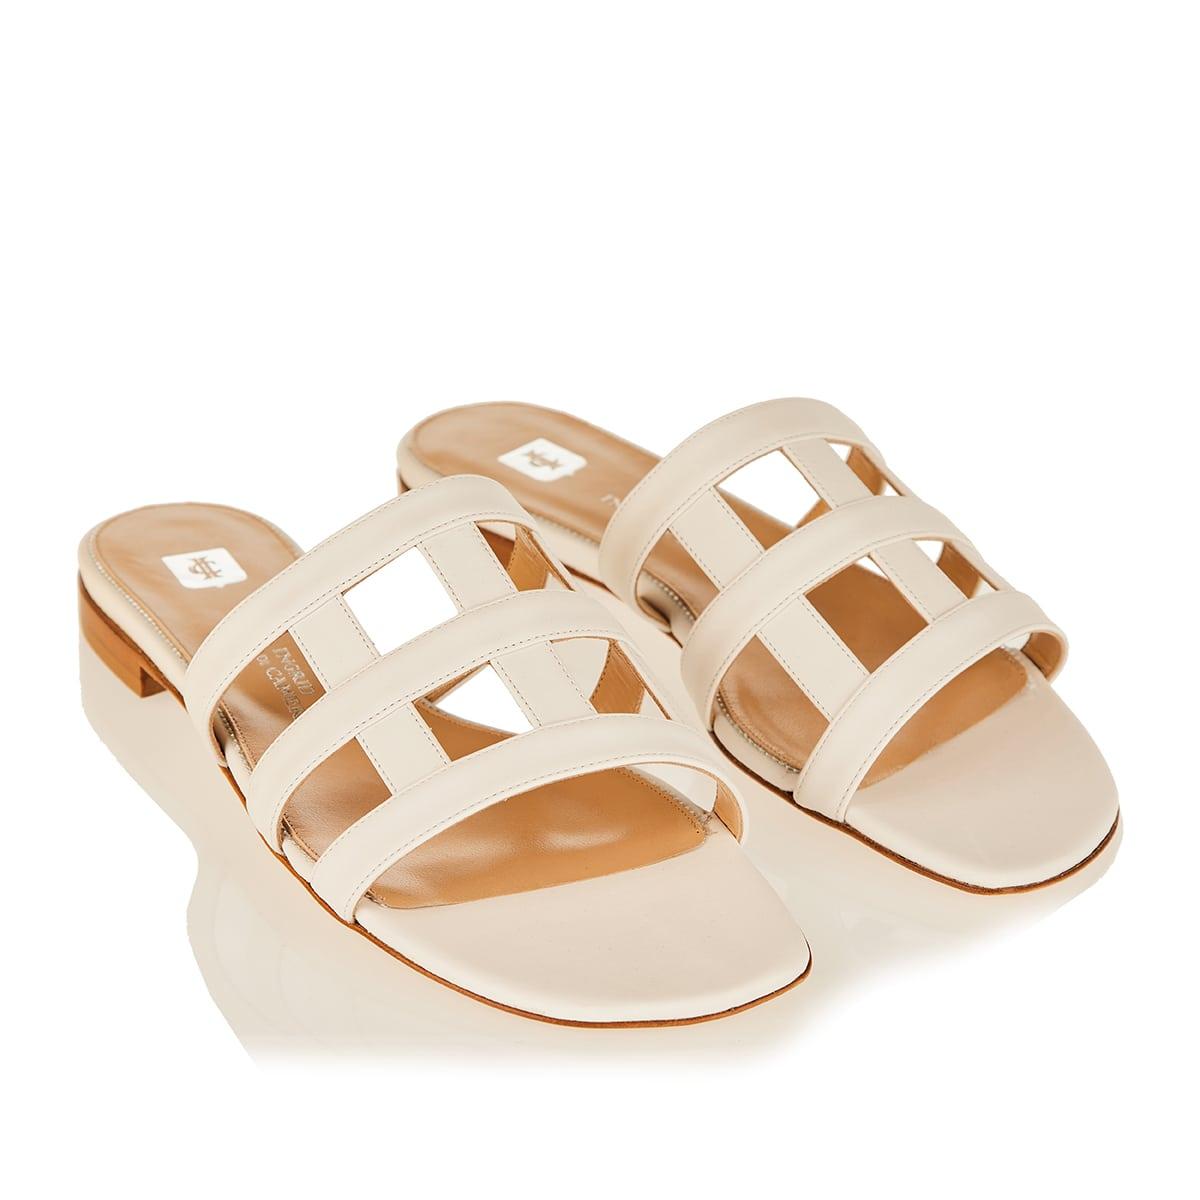 Giuli leather slide sandals